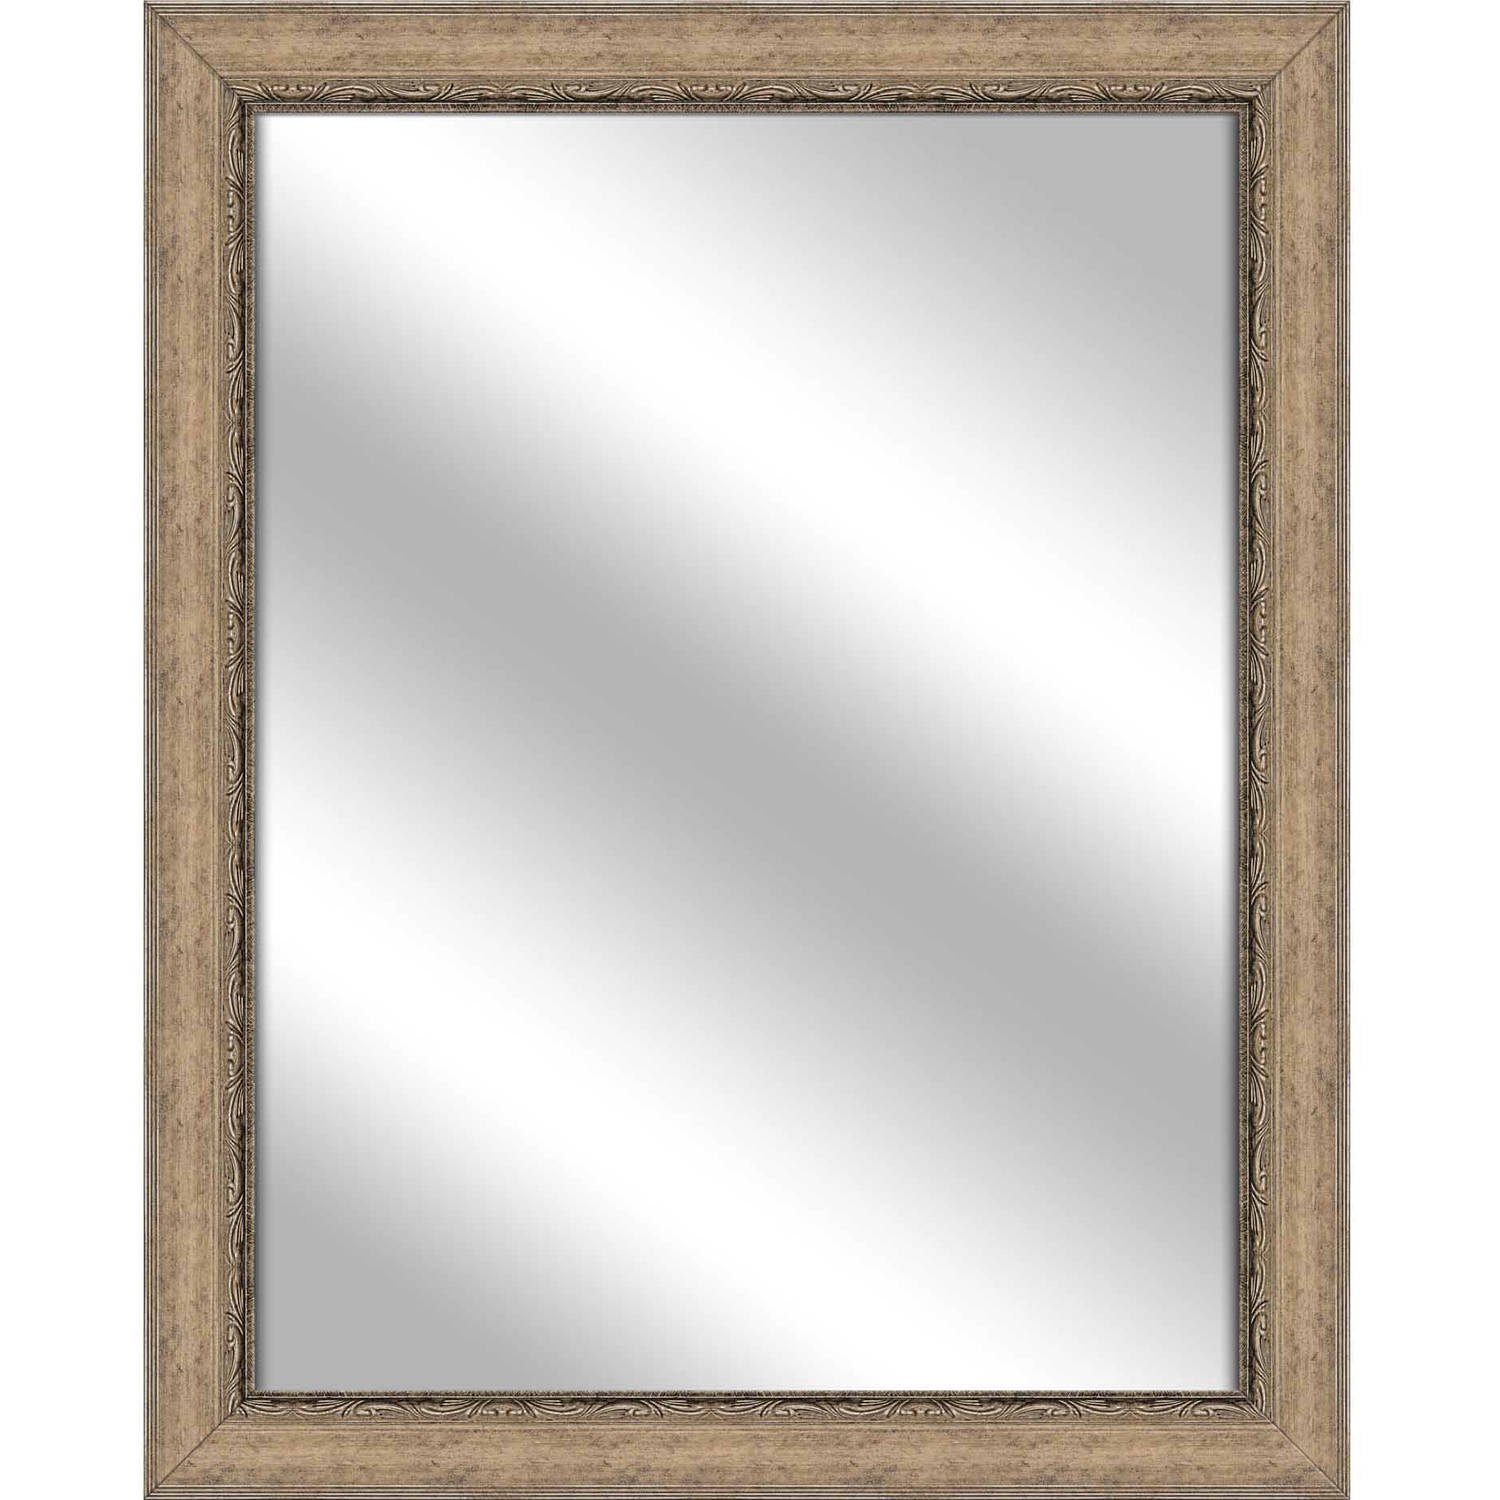 Vanity Mirror, Medium Champagne, 25.75x31.75 by PTM Images